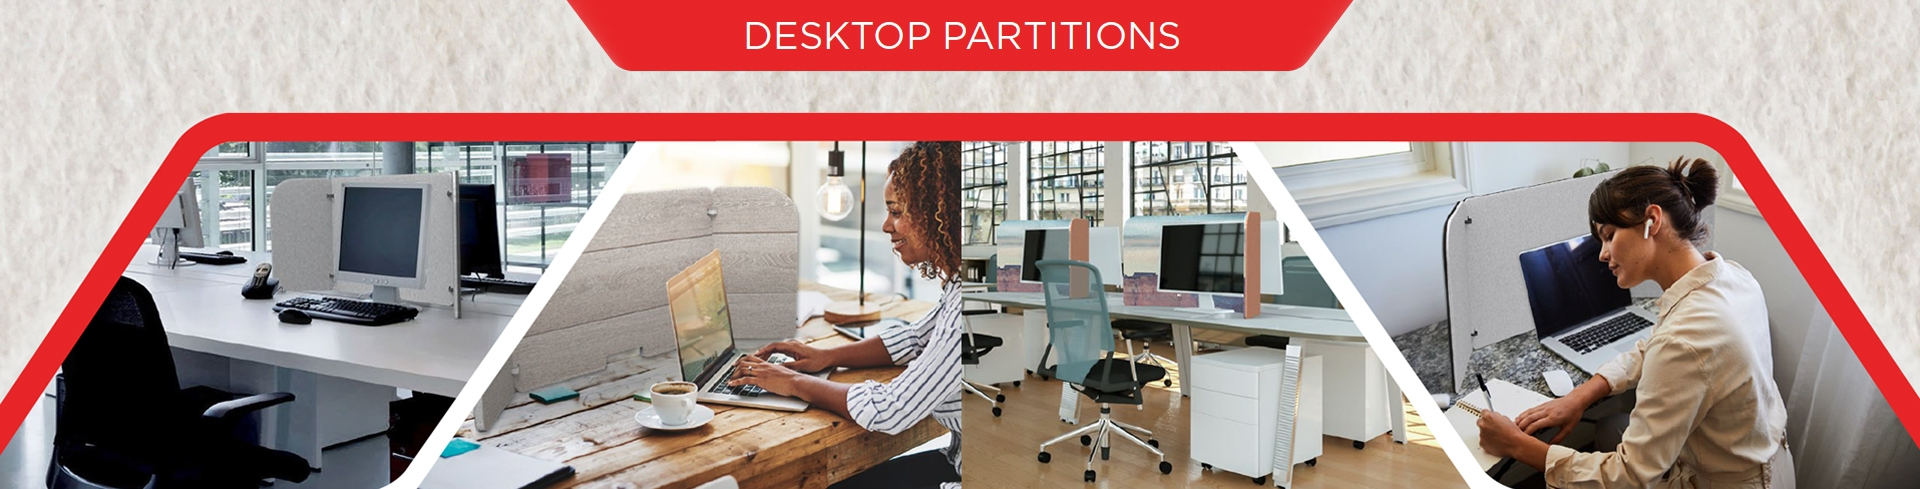 Desktop partitions